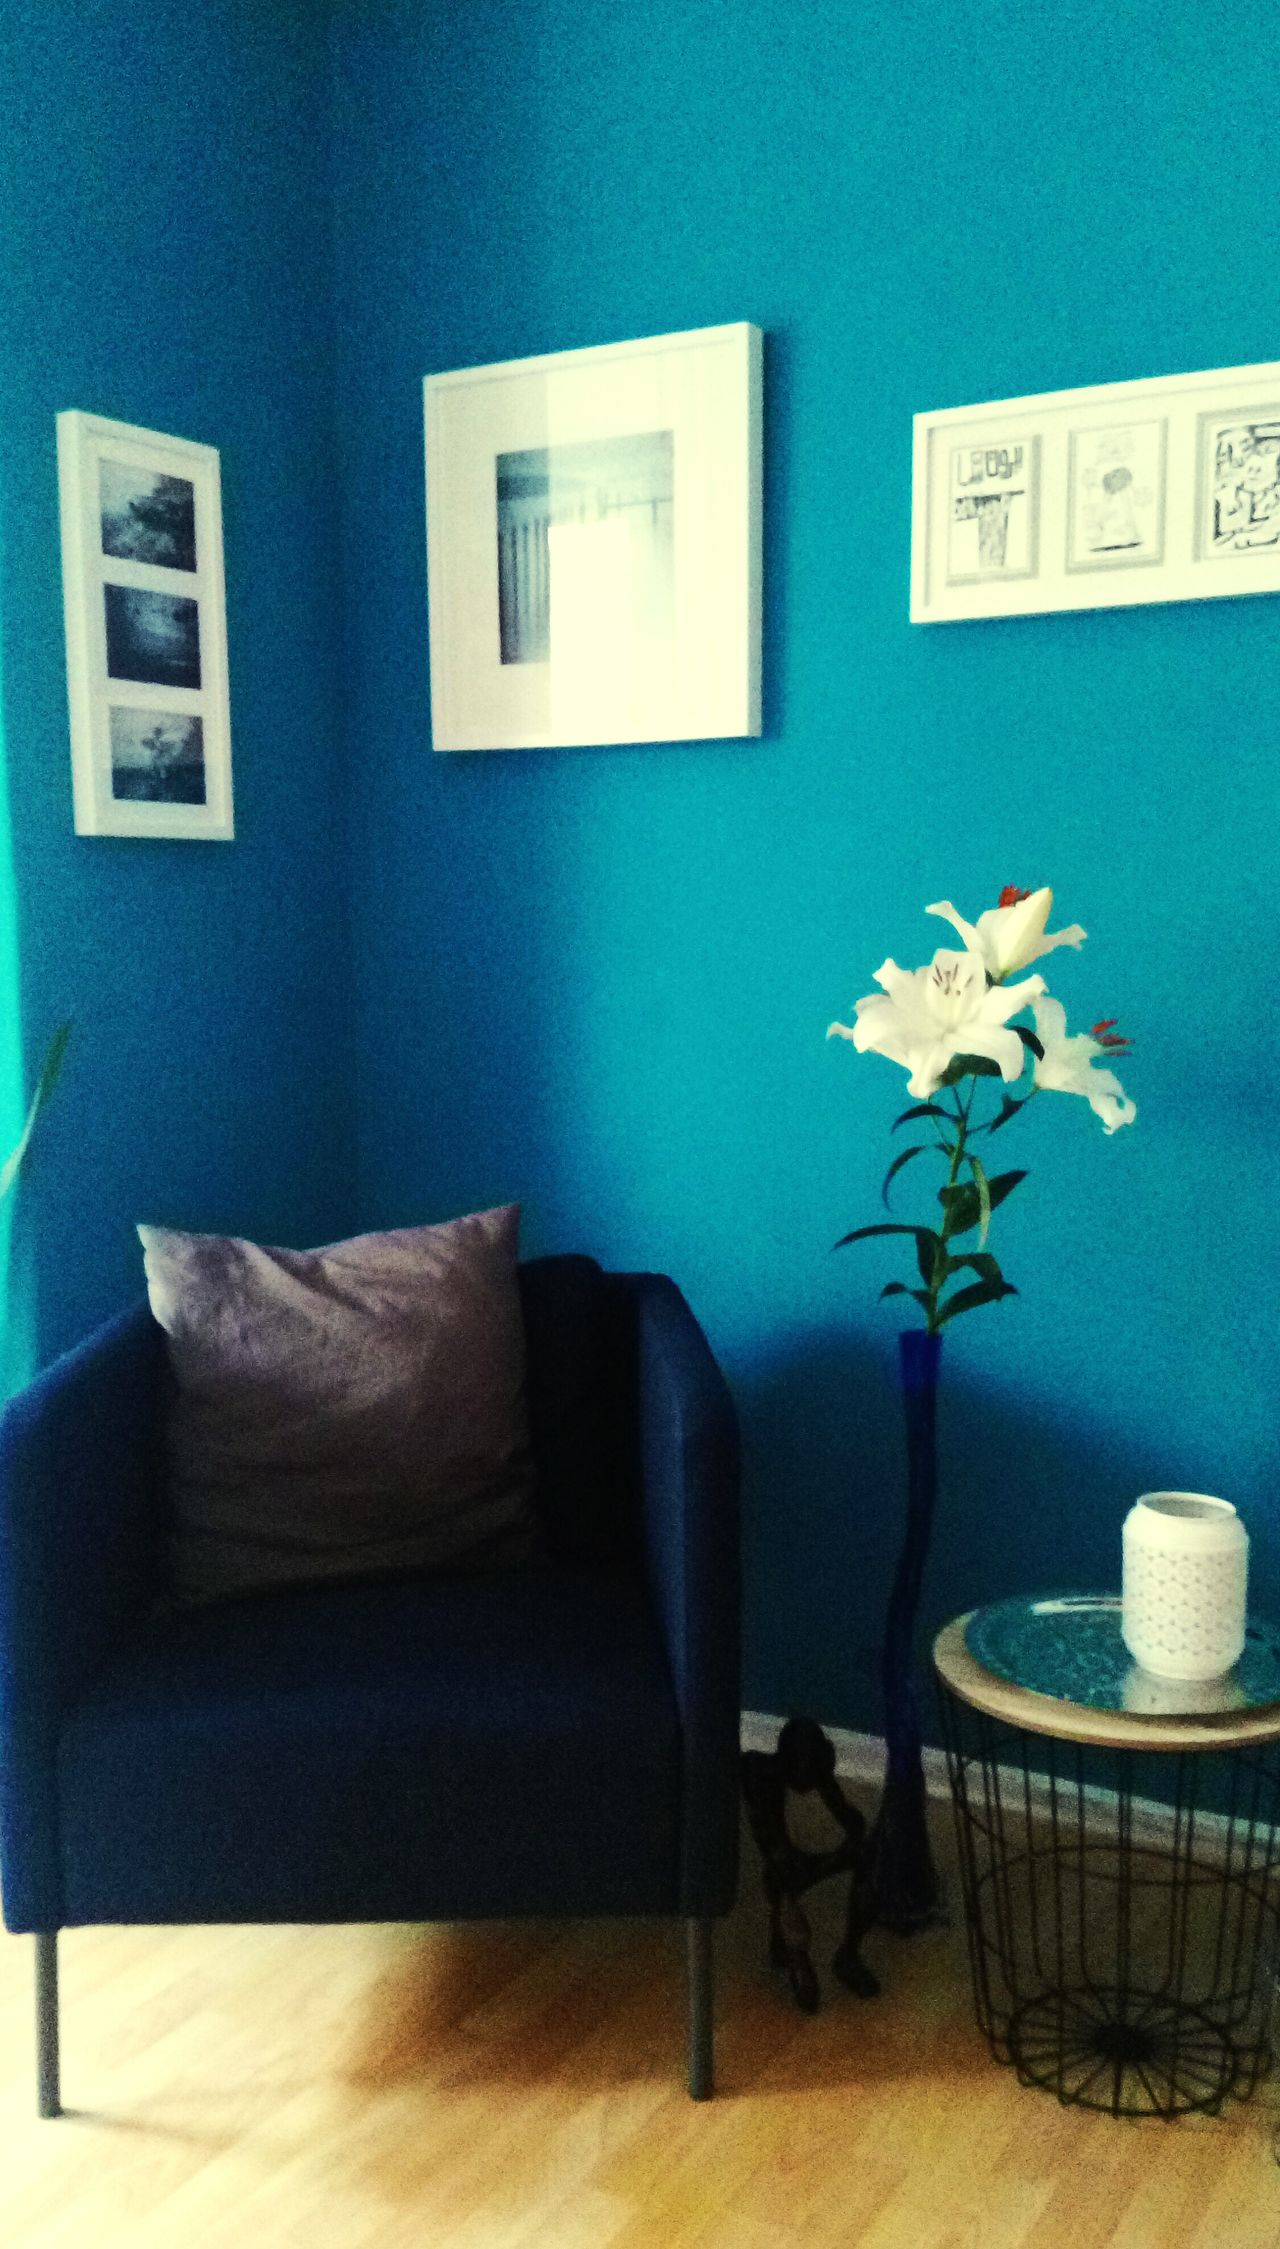 The Secret Spaces Indoors  Vase Wall - Building Feature Flower Home Interior Home Showcase Interior Chair Living Room Armchair Table No People Furniture Home Improvement Side Table Day Urban Lifestyle White Flower Lilies Lily Style Fleur De Lis Blue Background Beauty In Ordinary Things Iris - Plant Lily Flower